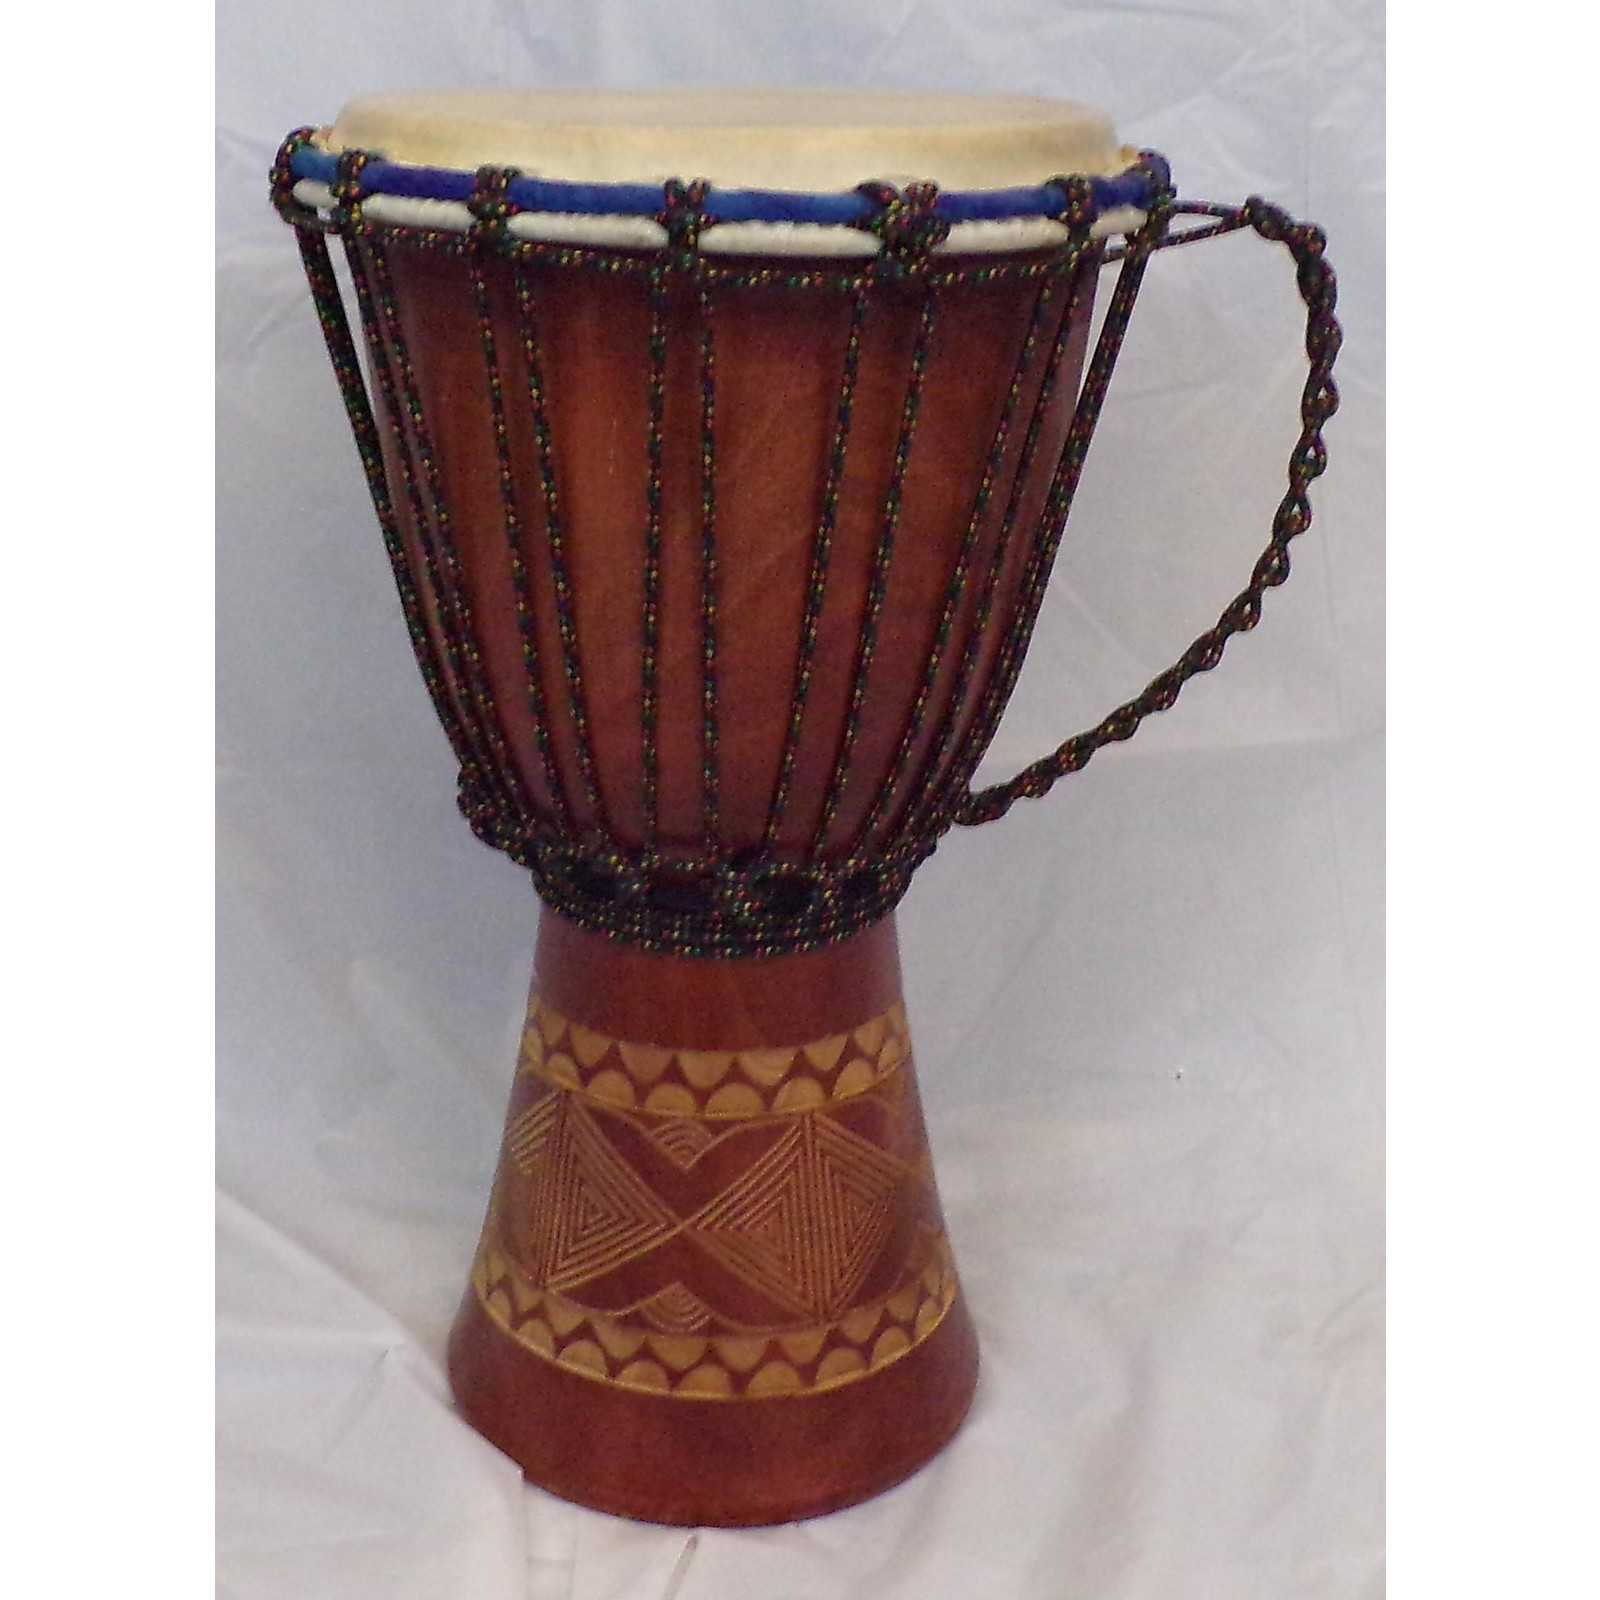 In Store Used Used Sageman Hand Carved Djembe